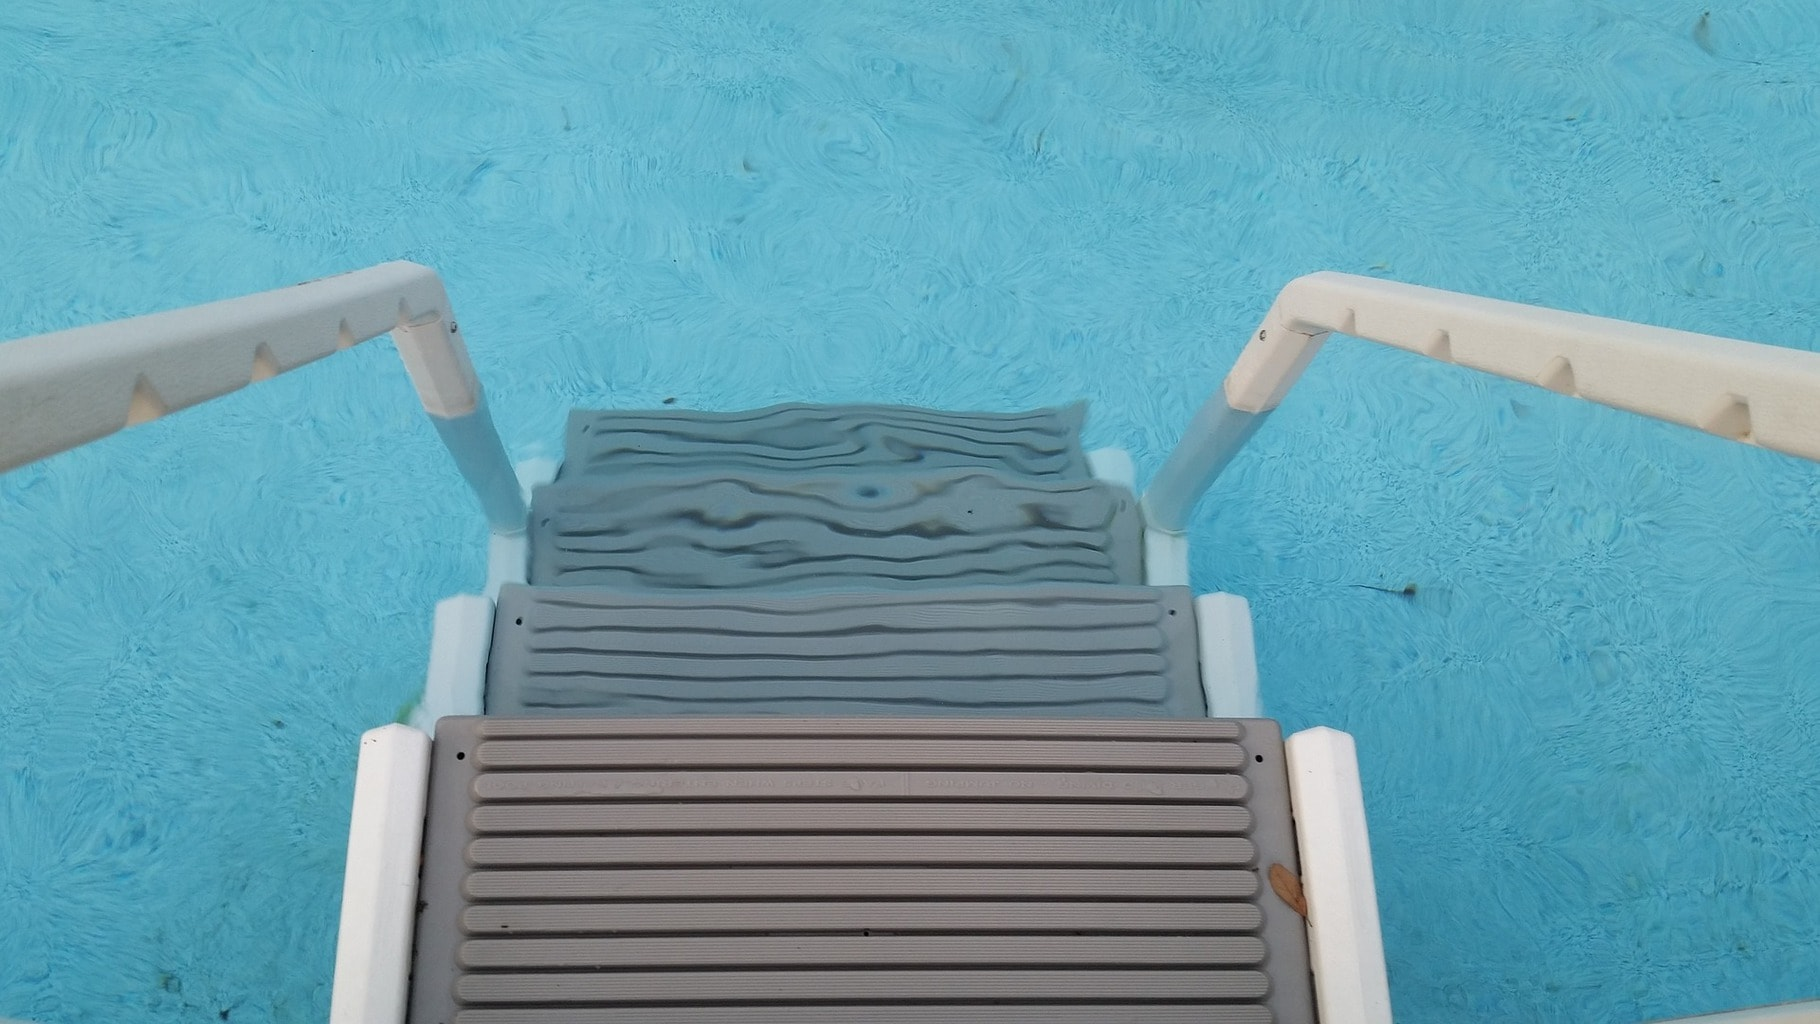 Top 8 Best Above Ground Pool LADDERS & STEPS Review 2019